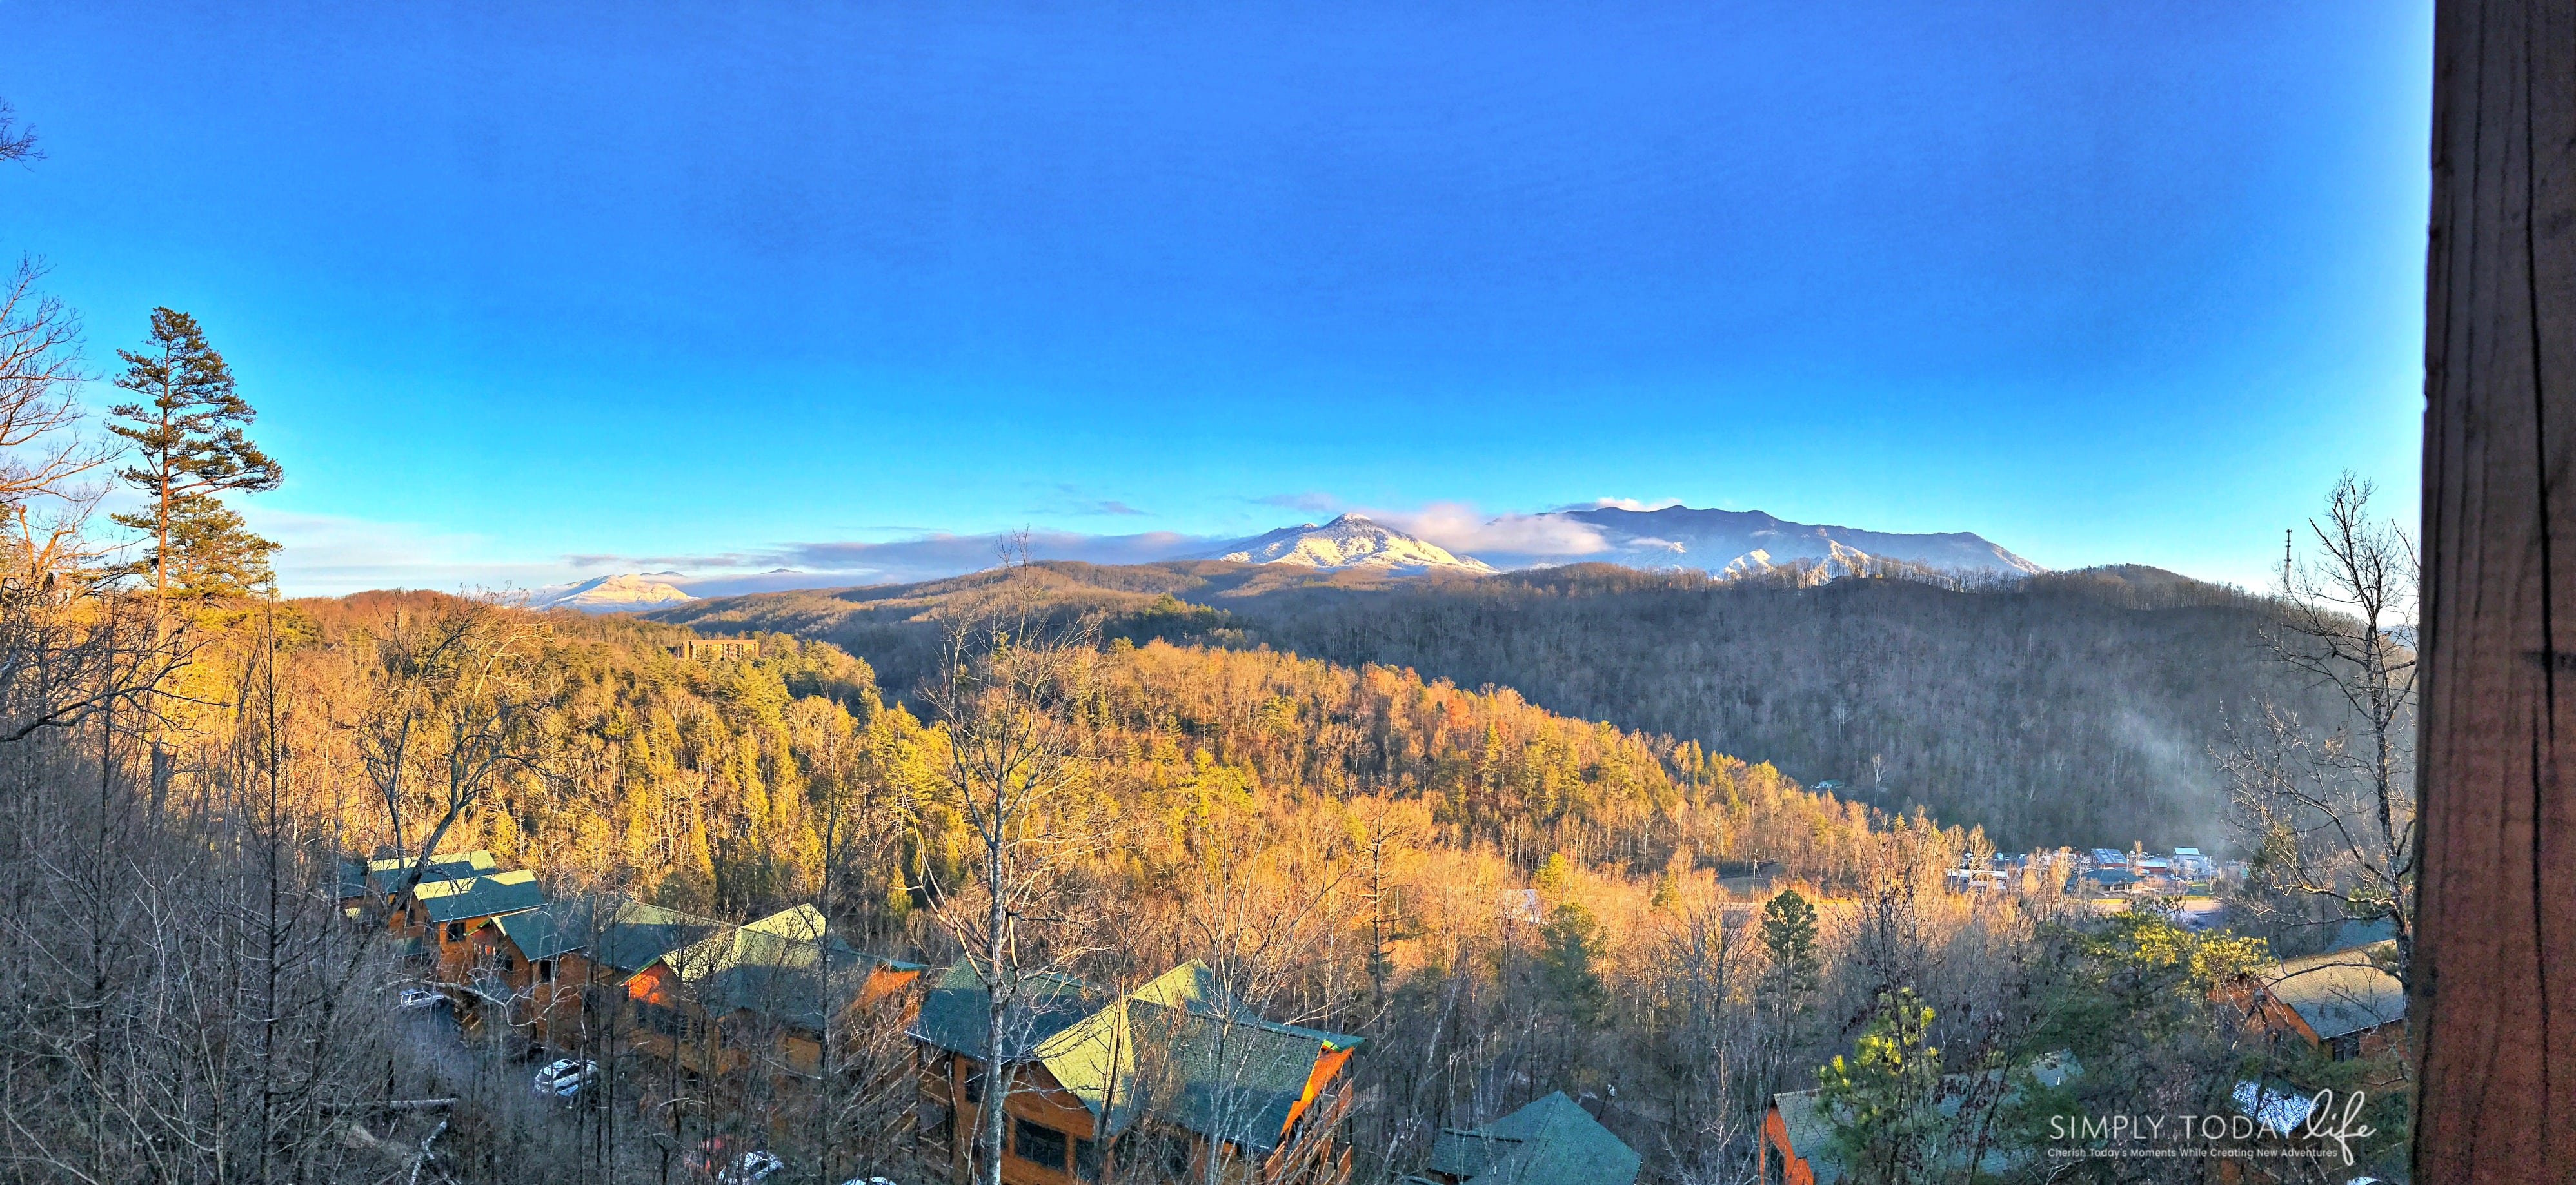 Best cabins in gatlinburg for families with breathtaking Best mountain view cabins in gatlinburg tn